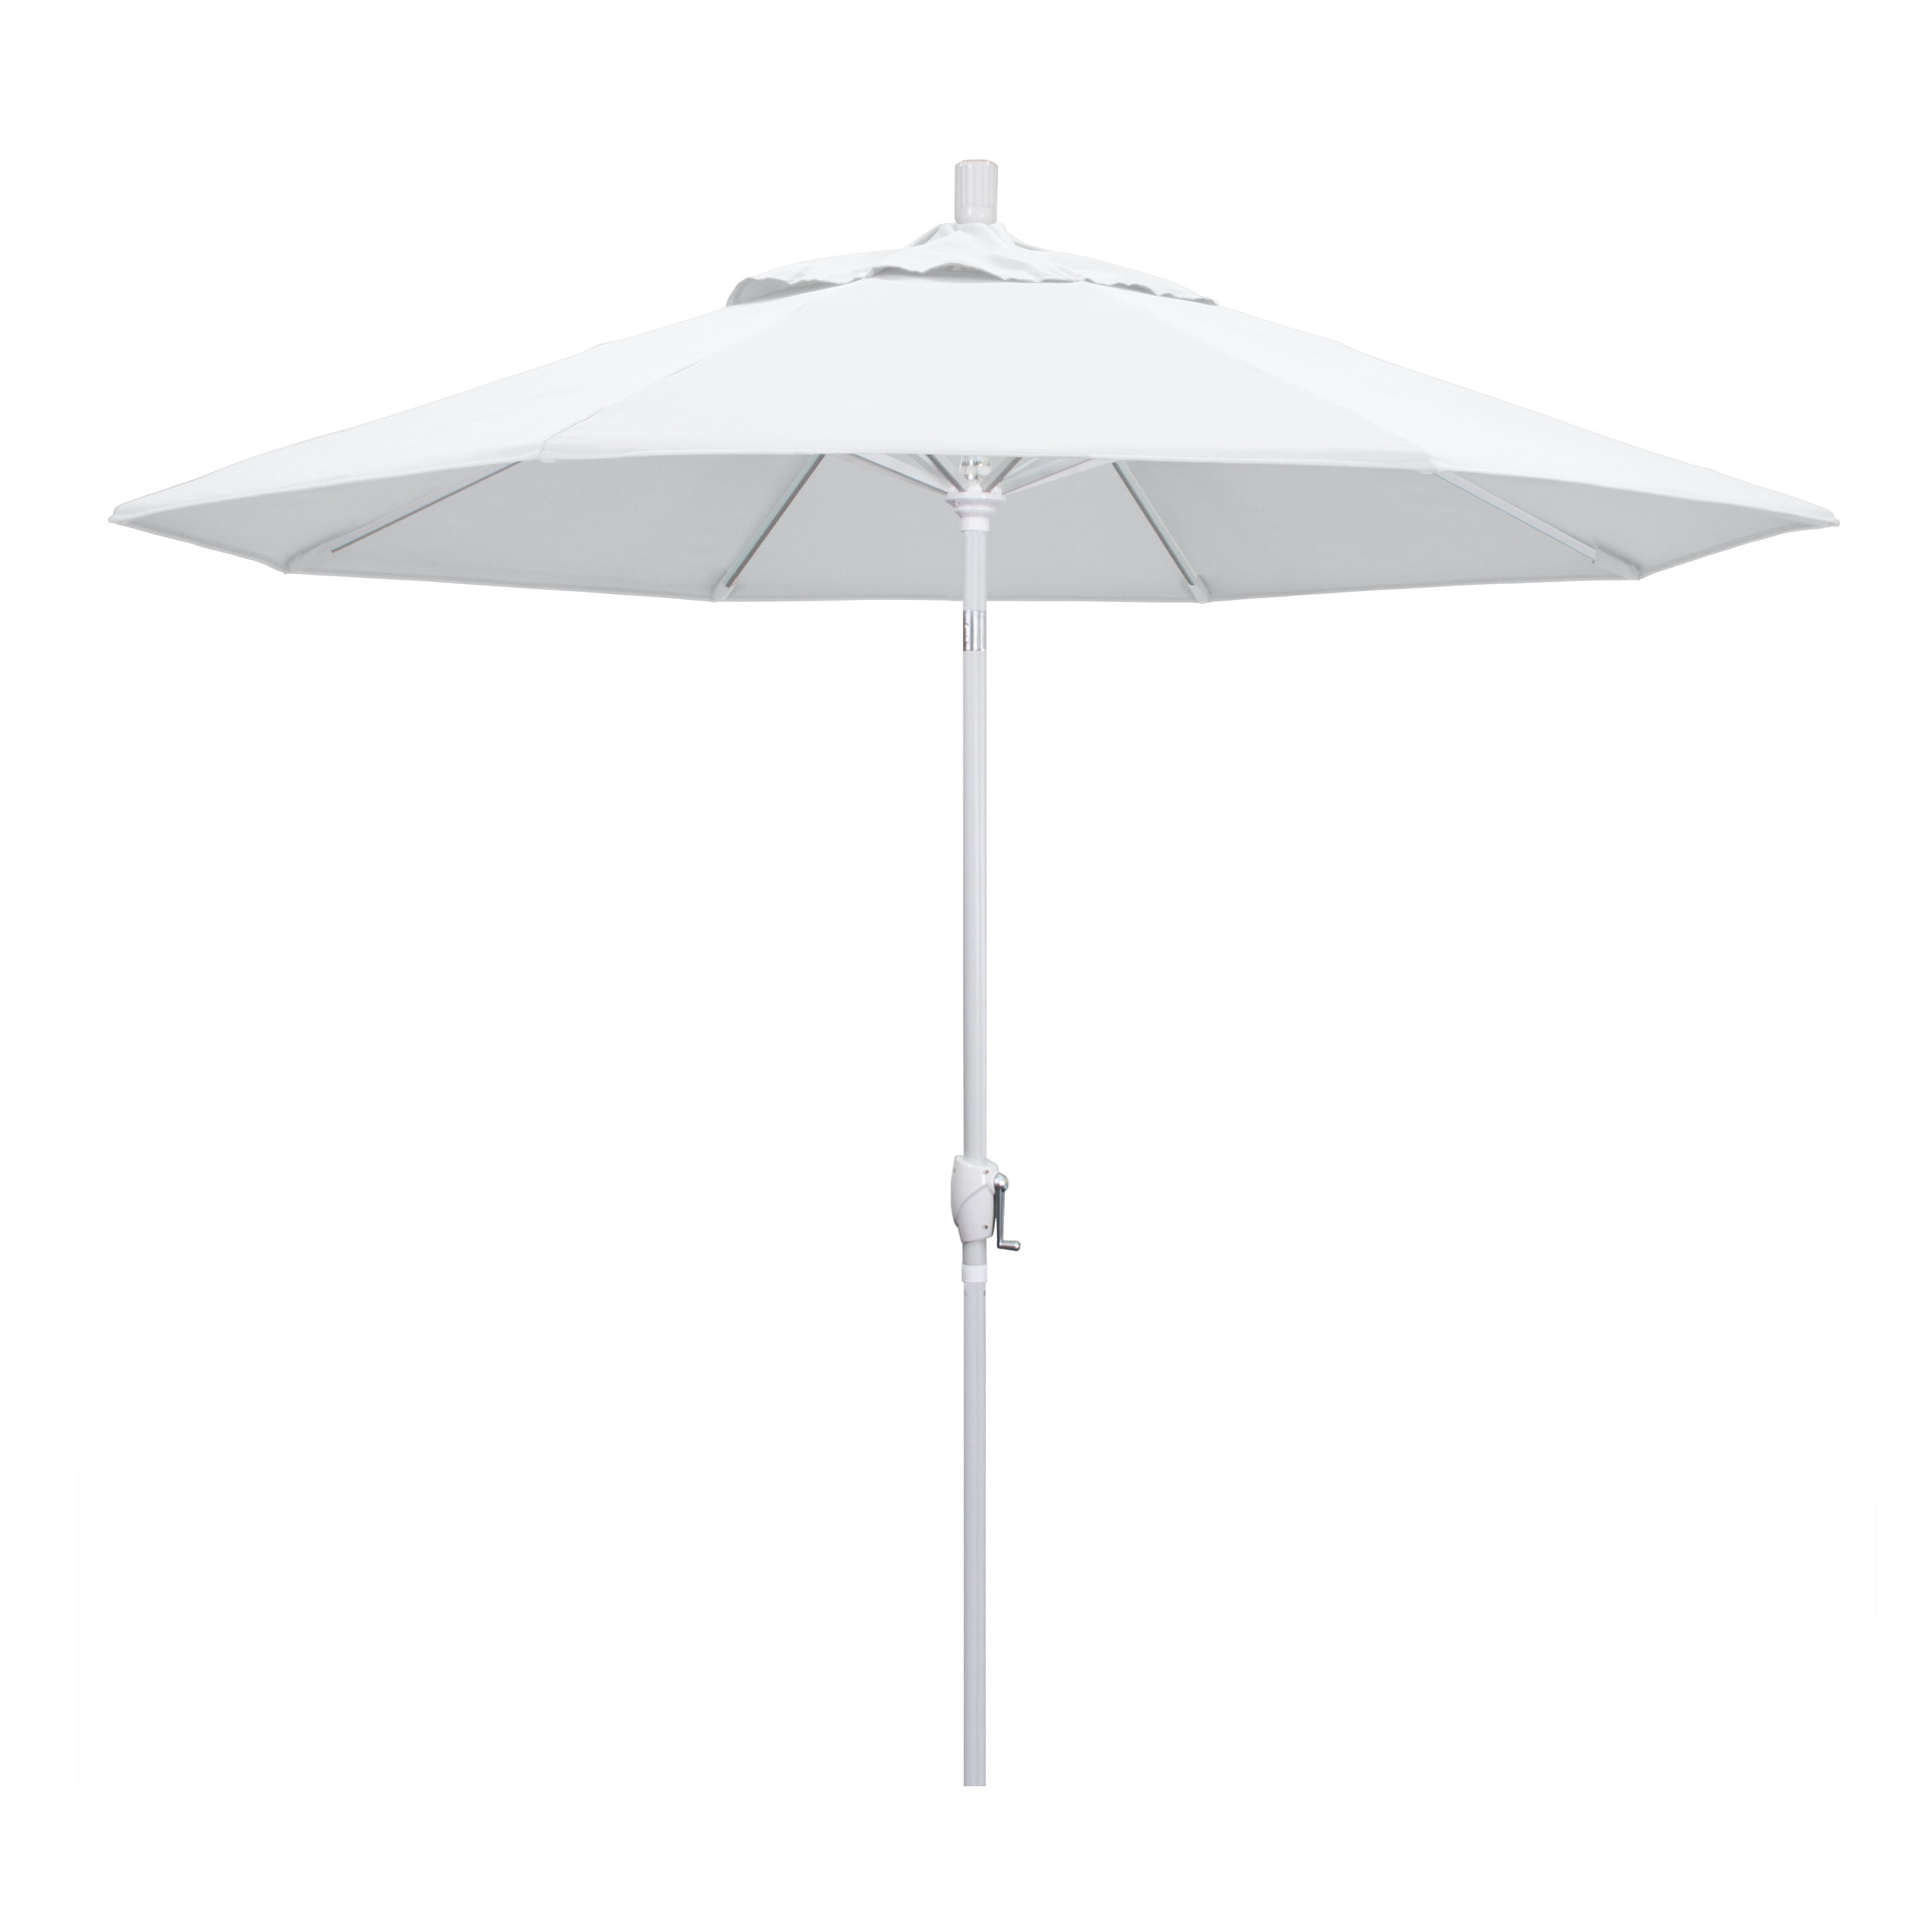 Darby Home Co Wallach 9' Market Umbrella With Most Recently Released Wallach Market Sunbrella Umbrellas (View 11 of 20)